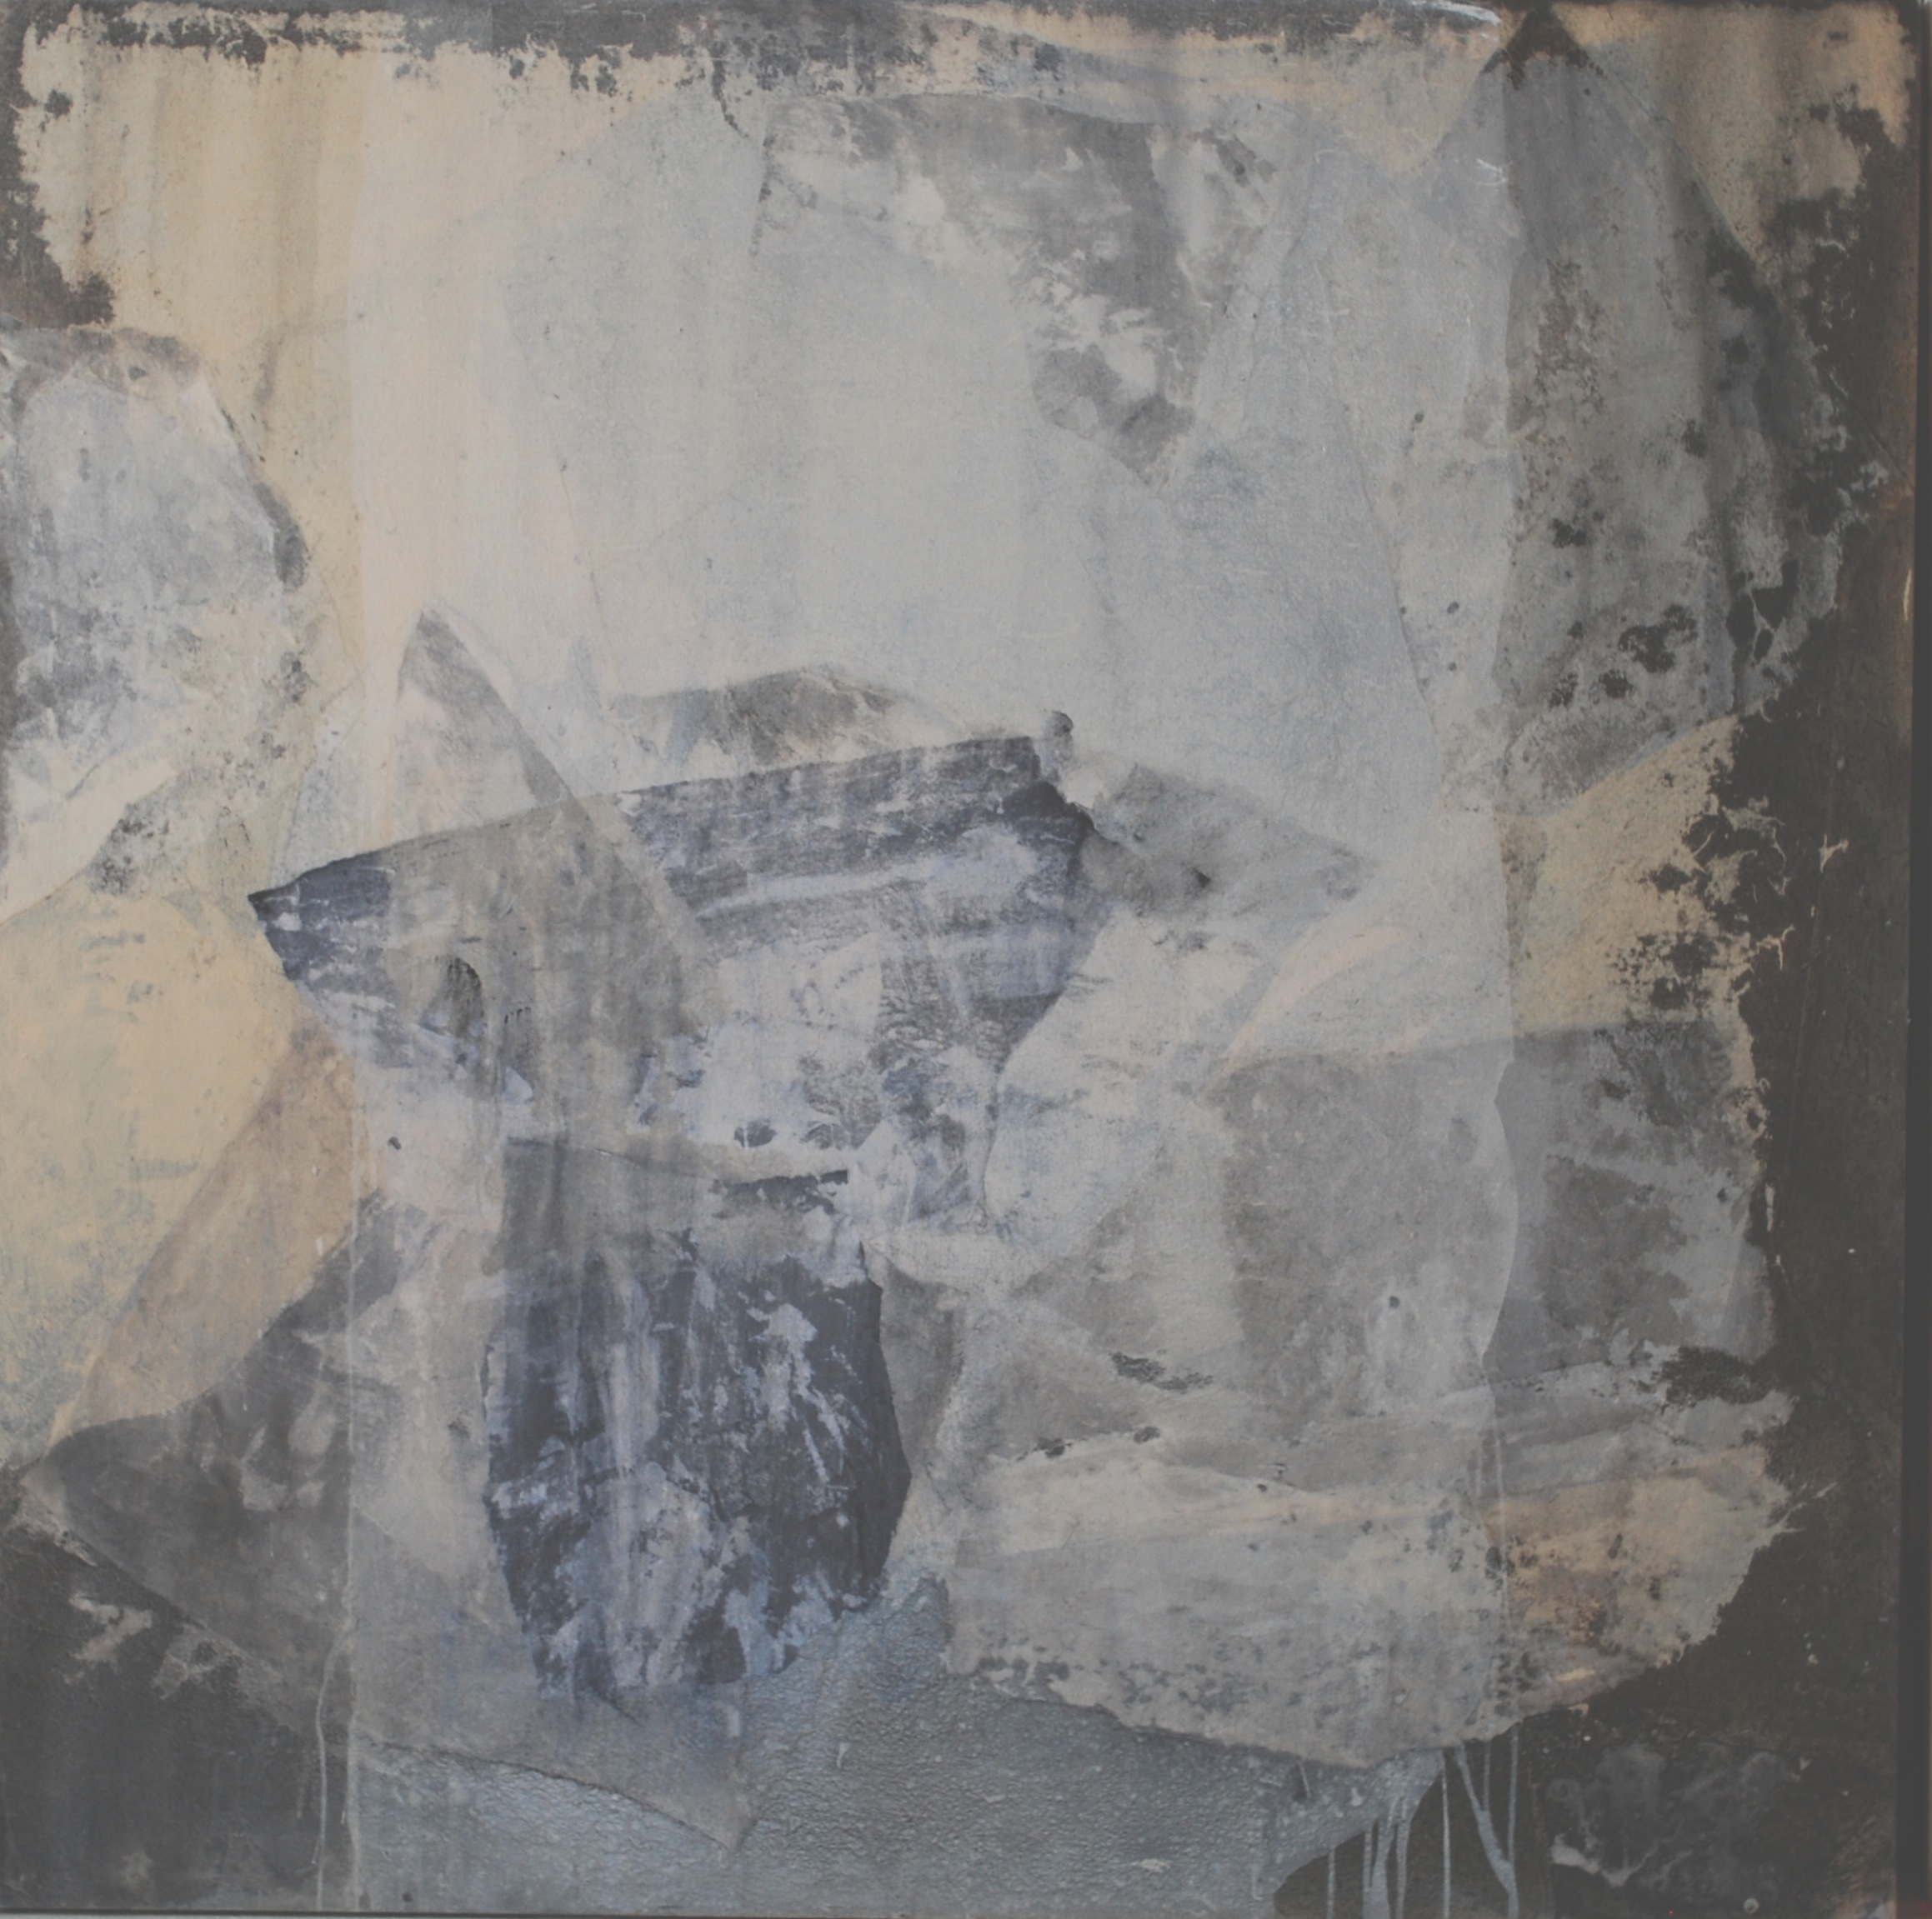 SoHyun Bae, Wrapped Shards #8, 2002, rice-paper and pure pigment on canvas, 60 x 60 inches